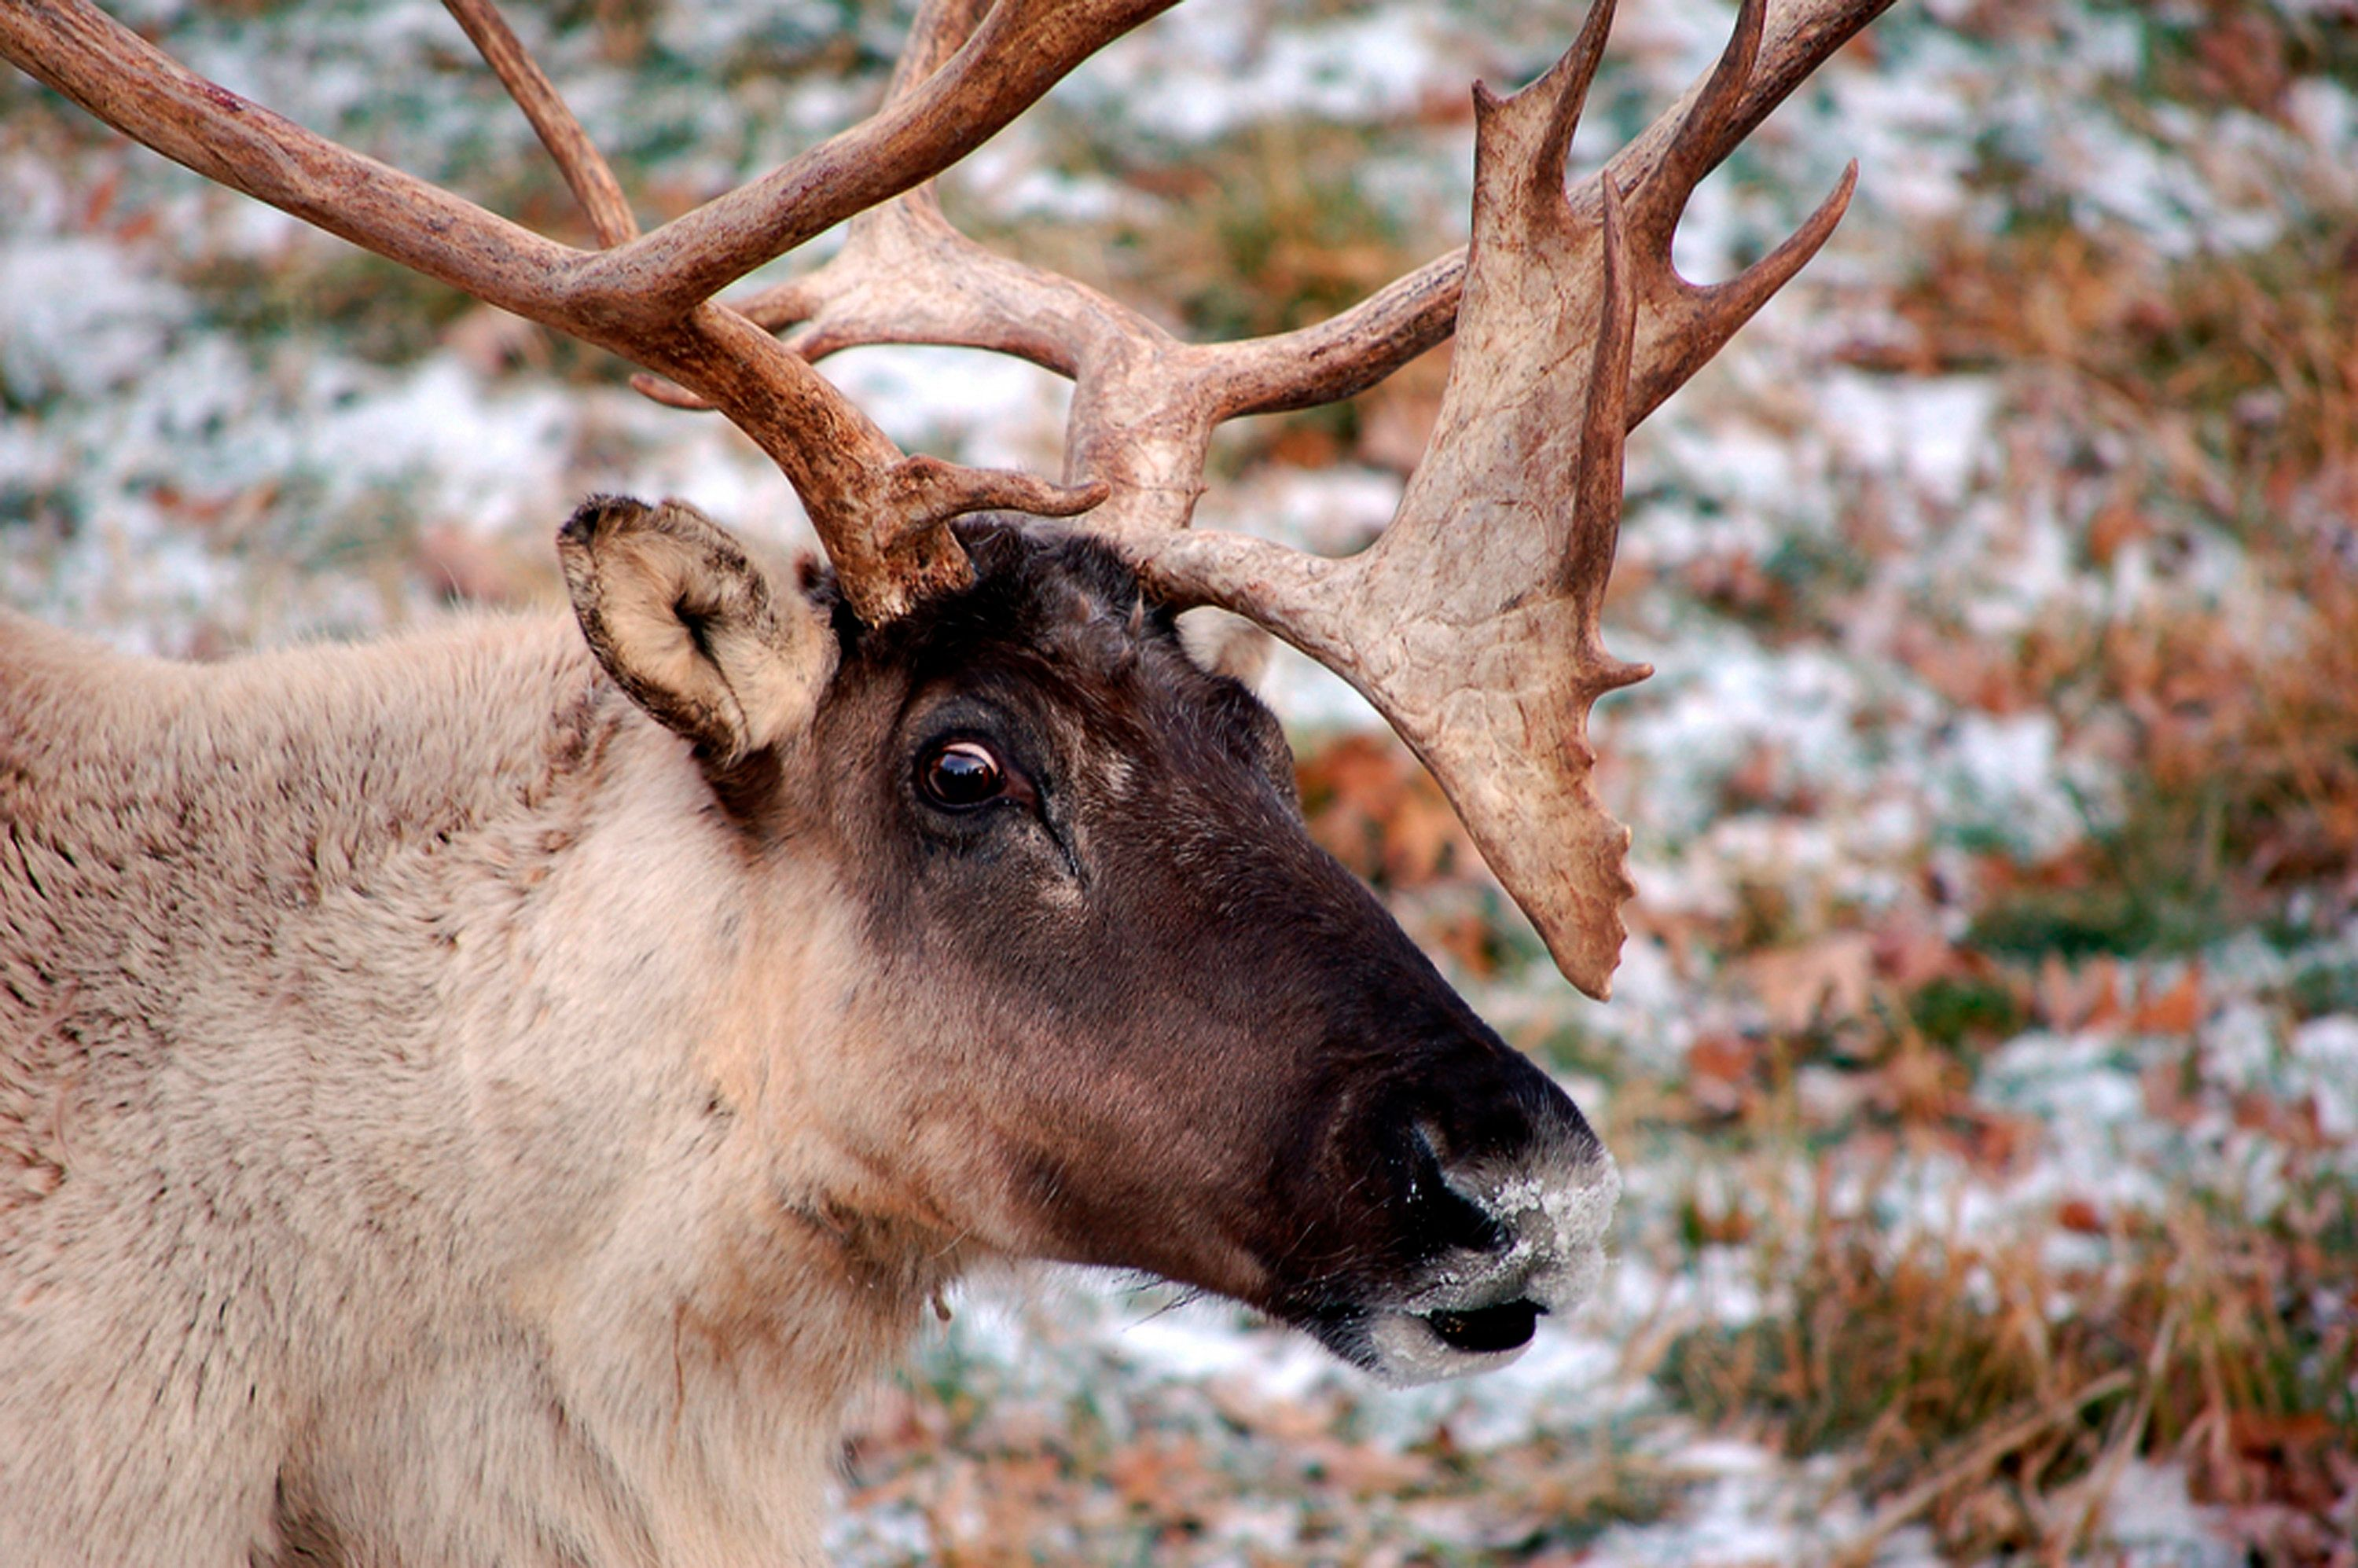 Wild reindeer populations have declined more than 50 percent over the last two